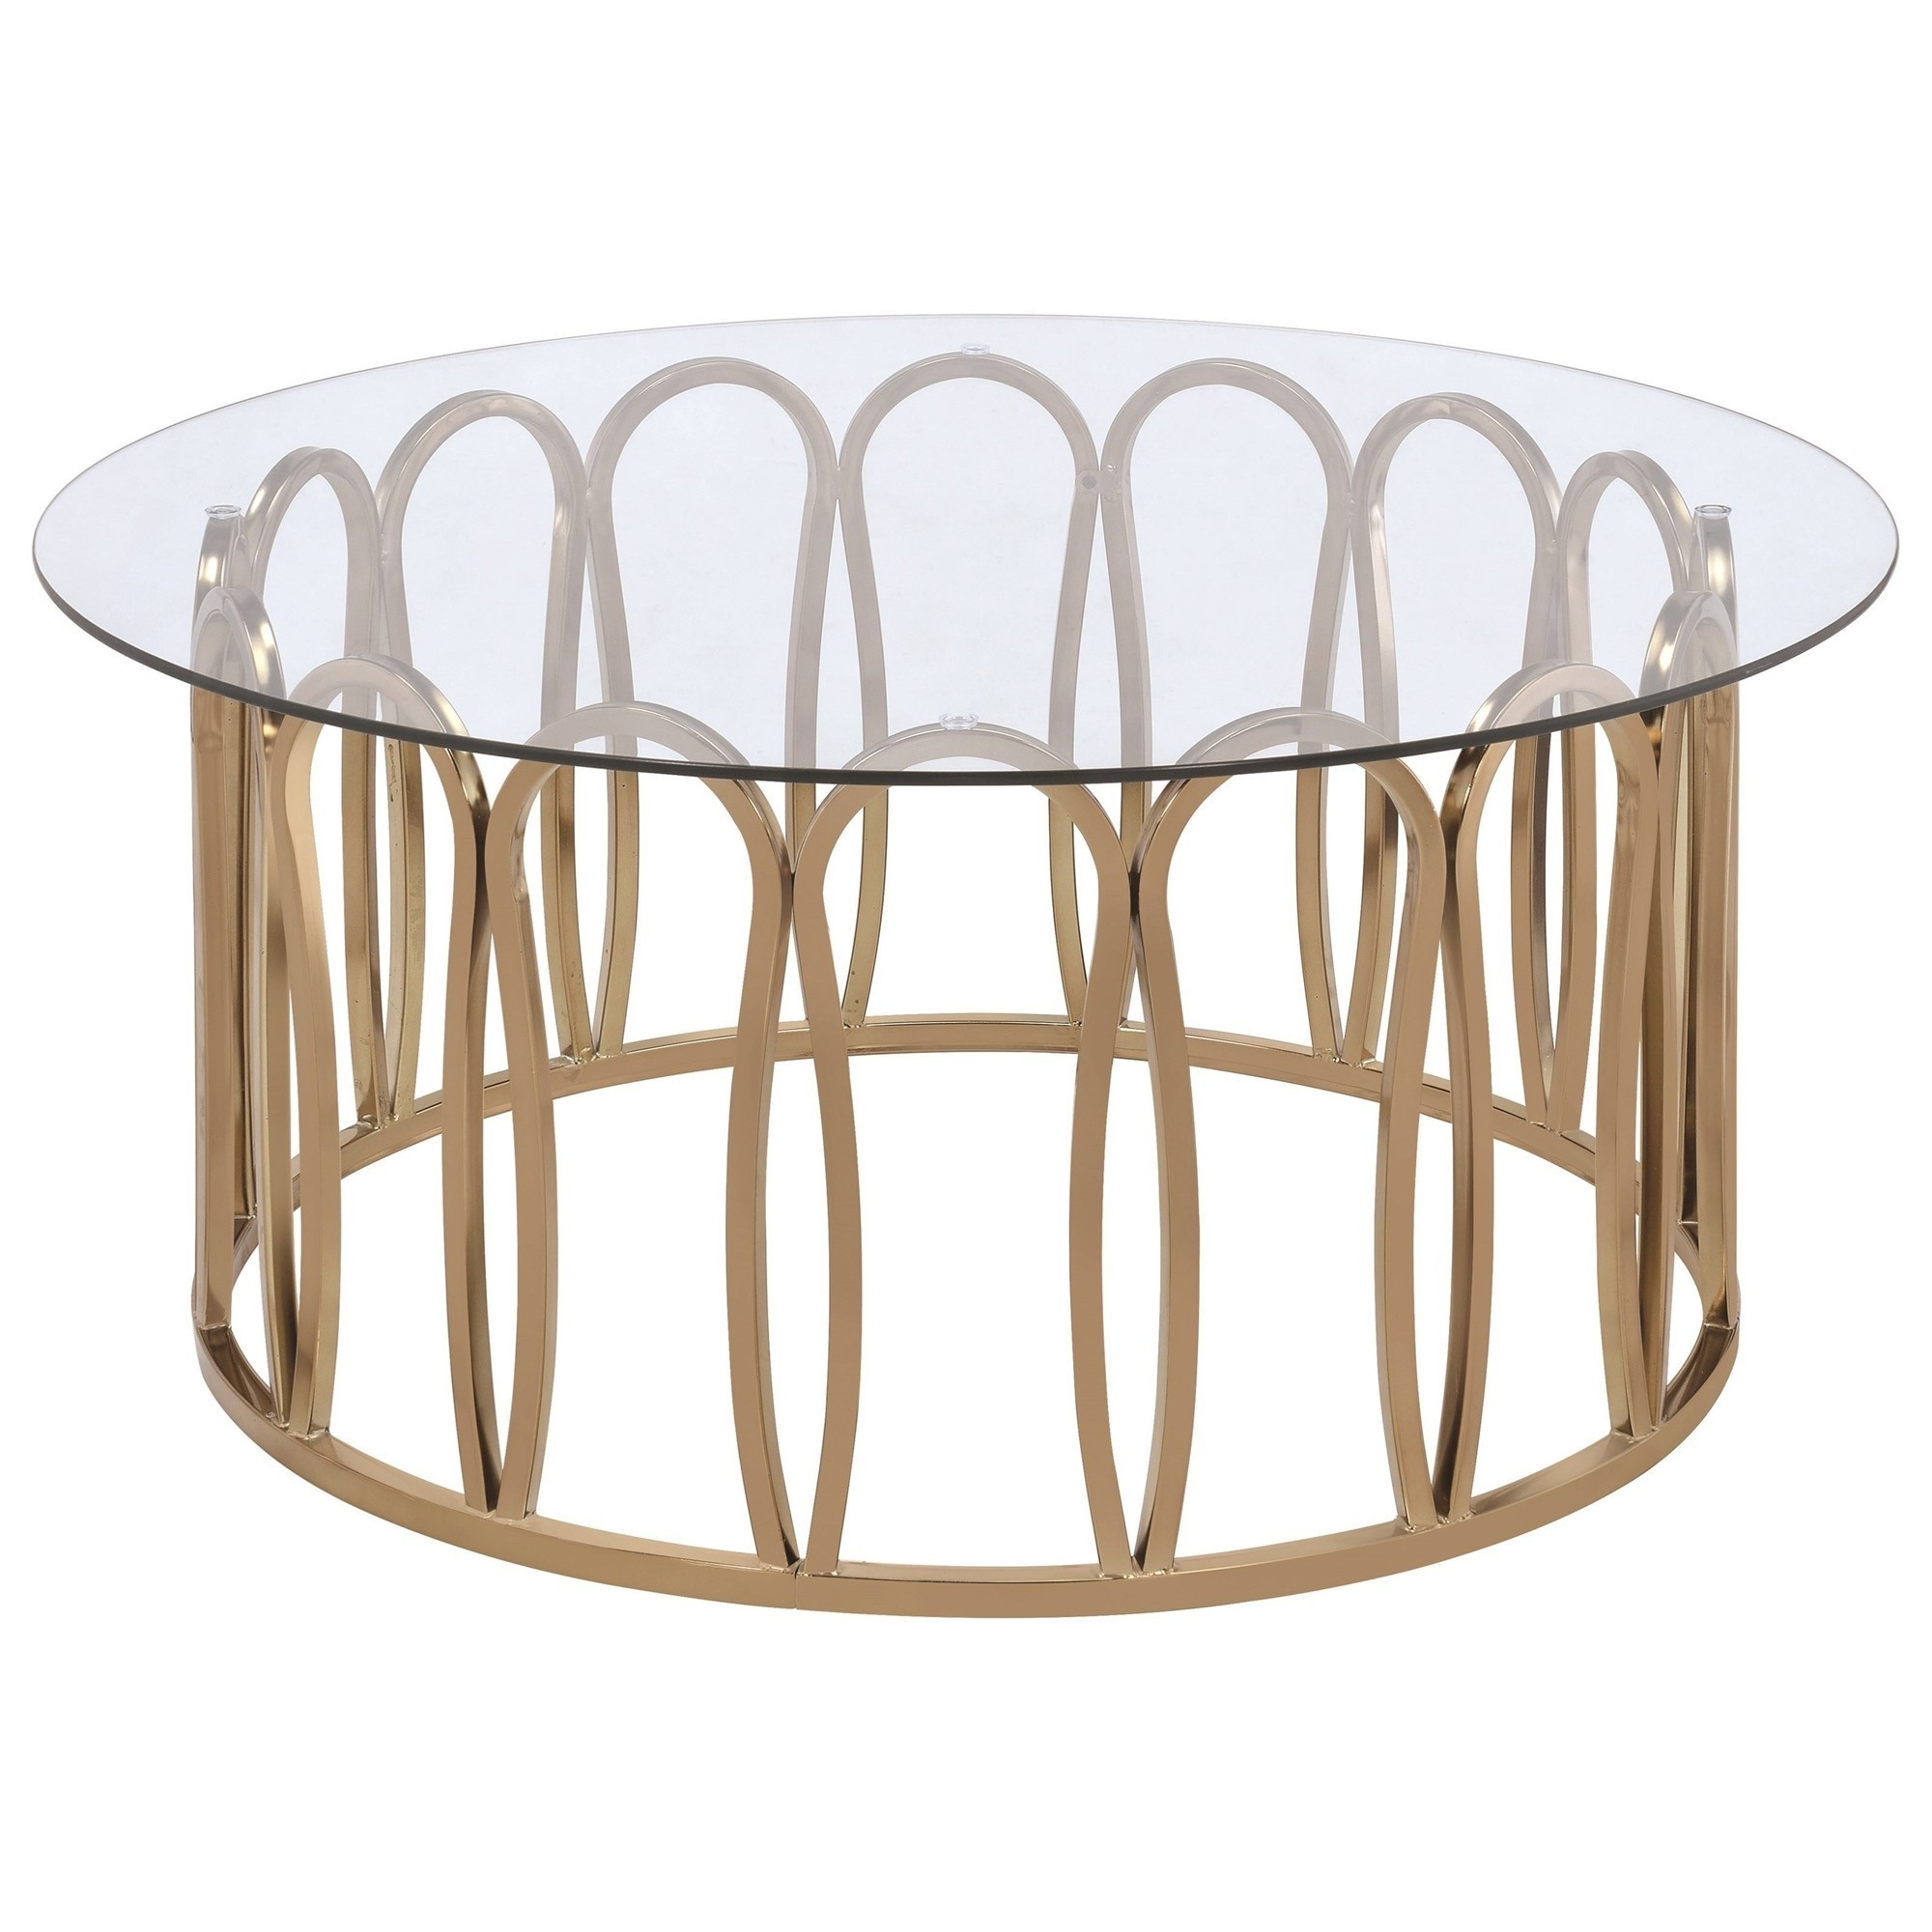 11 Lovely Metal Coffee Table Sets Pertaining To Most Recent Potomac Adjustable Coffee Tables (Gallery 5 of 20)